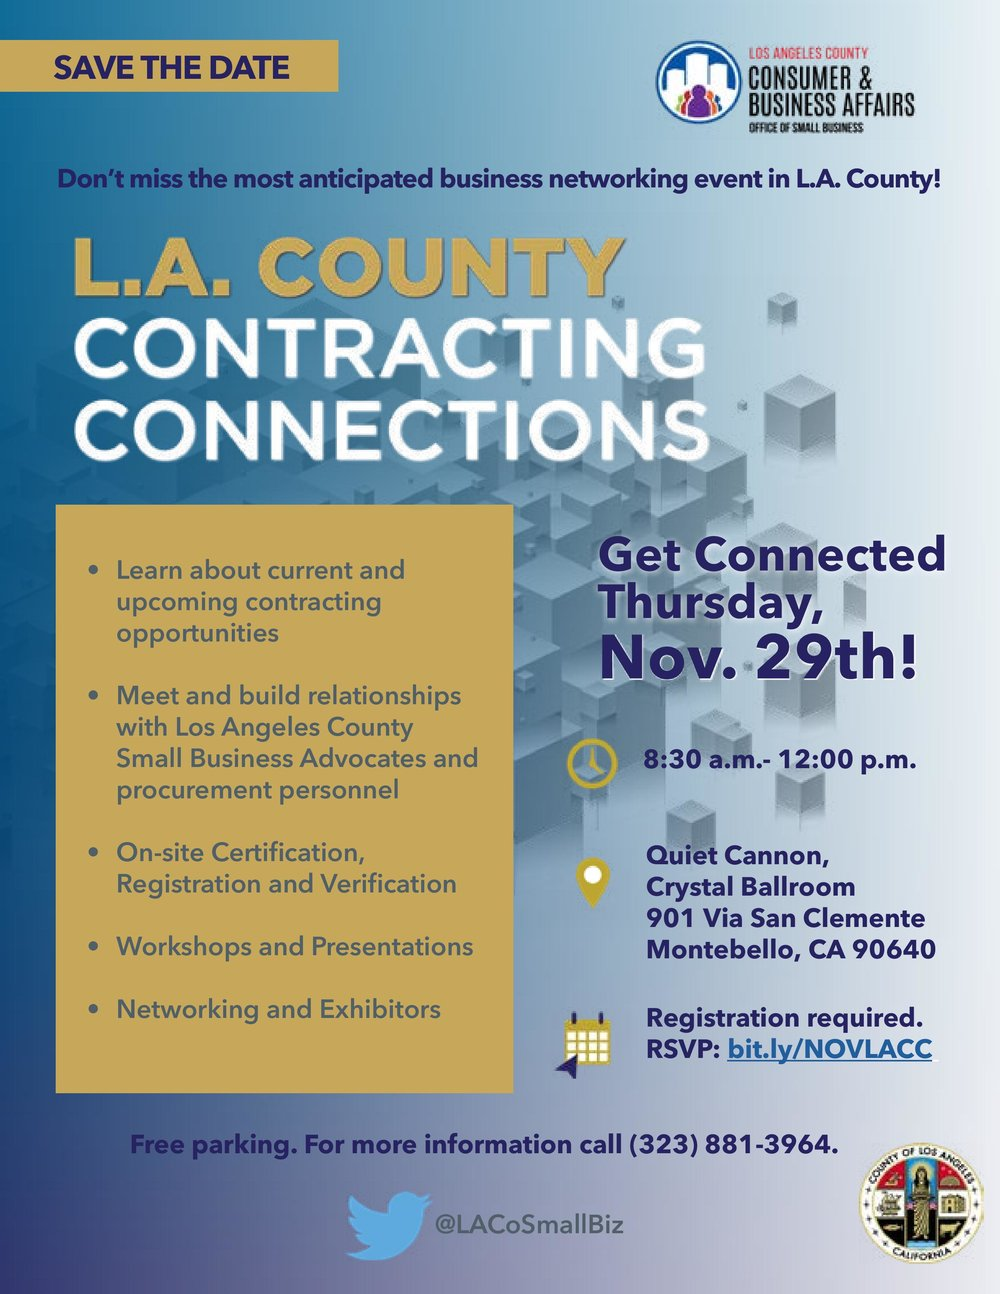 la county contracting connections - November 29th, 2018